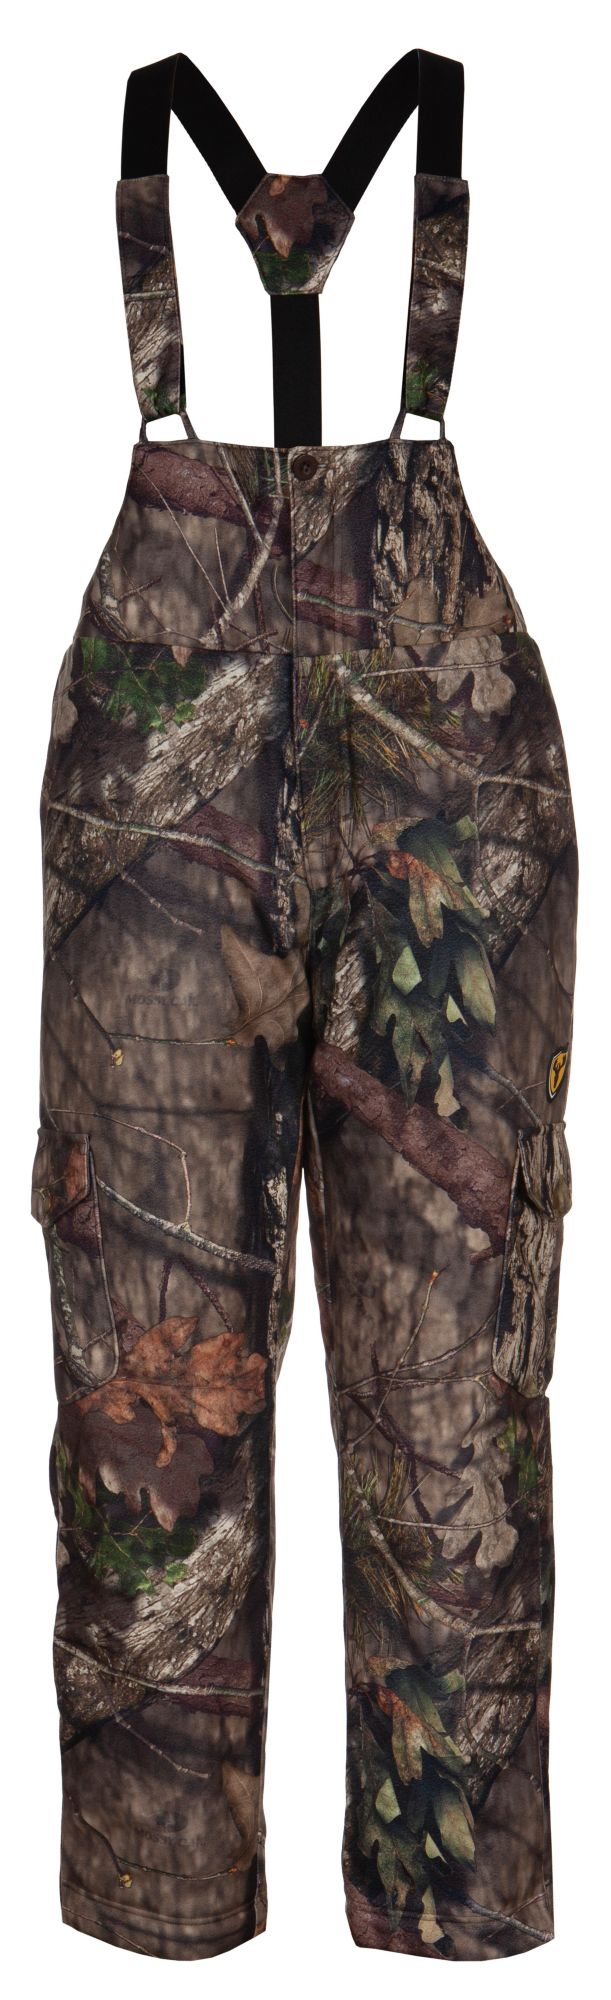 Blocker Outdoors ScentBlocker Men's Whitetail Pursuit Insulated Bib, Size: Medium, Mossy Oak Country thumbnail